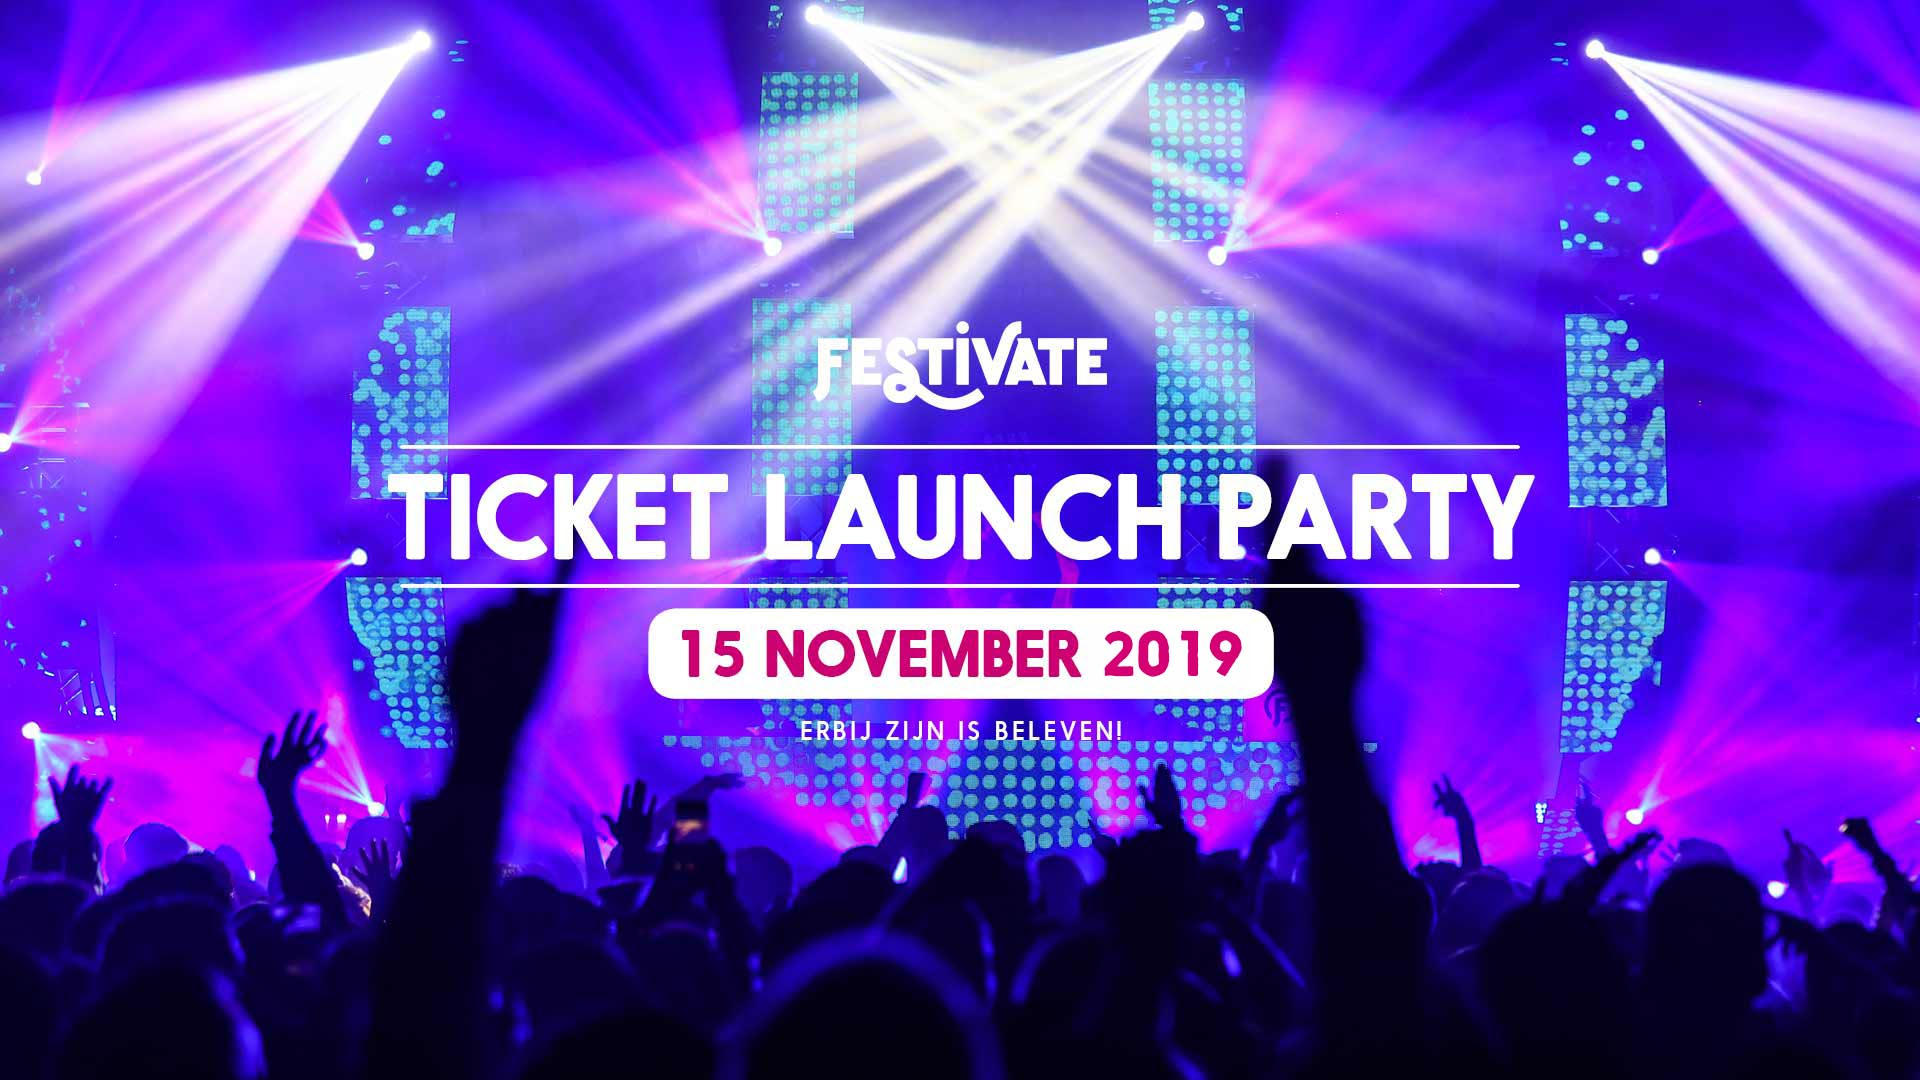 Ticket launch party